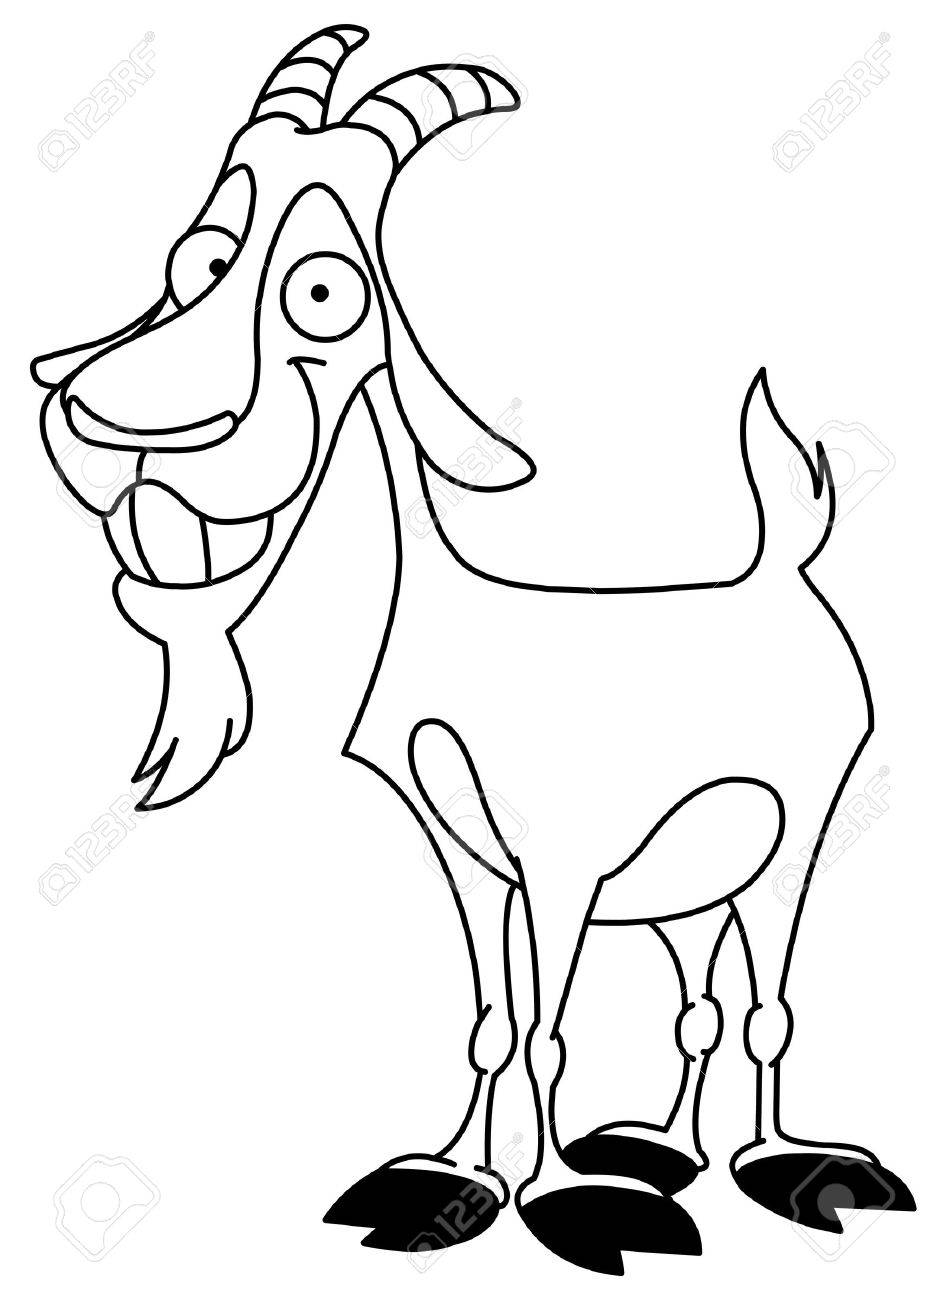 Outlined billy goat Stock Vector - 7898134